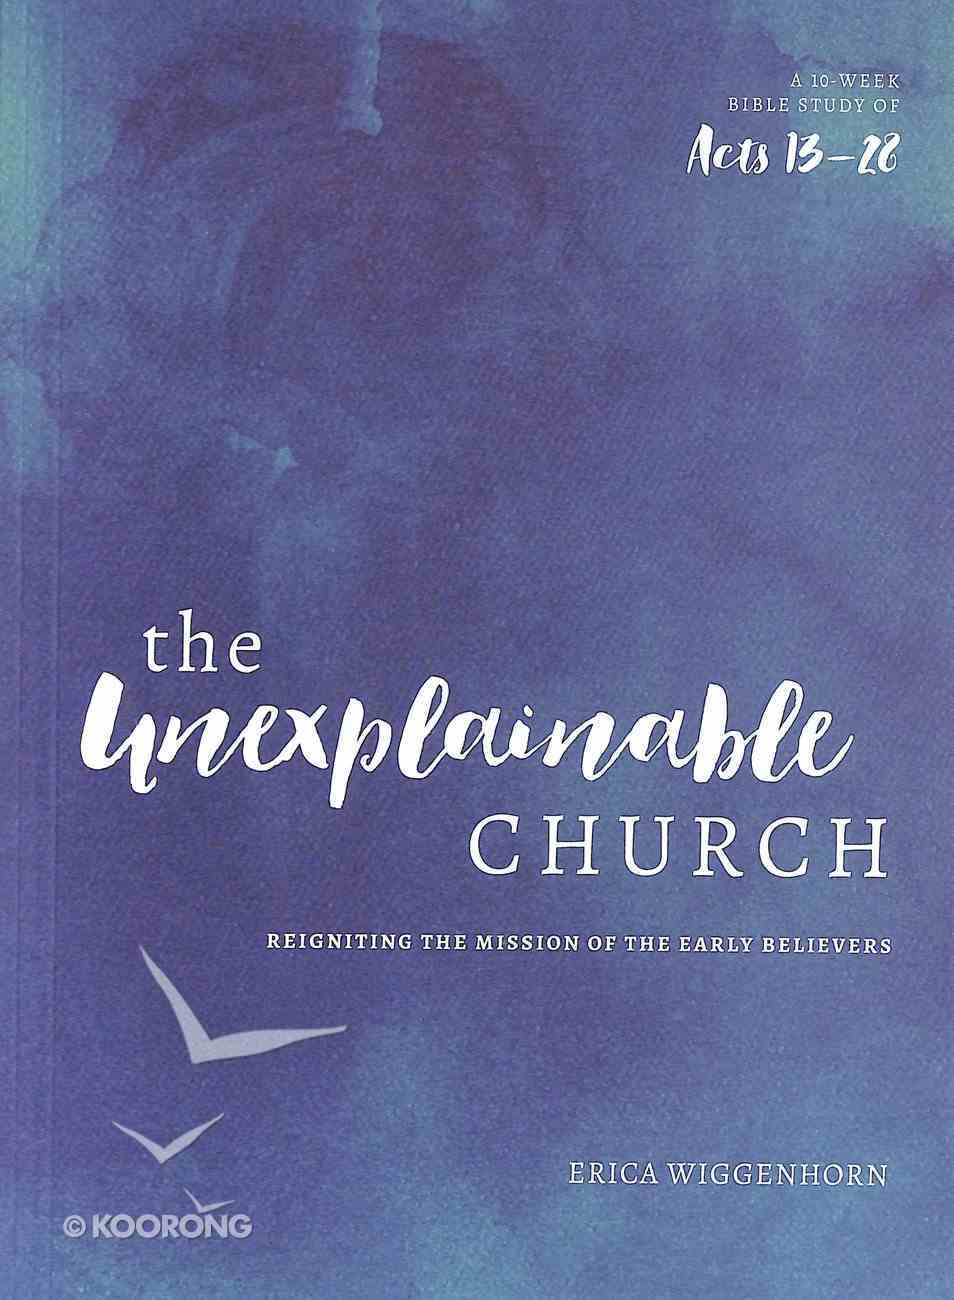 The Unexplainable Church: Reigniting the Mission of the Early Believers (A Study Of Acts 13-28 - Book) Paperback